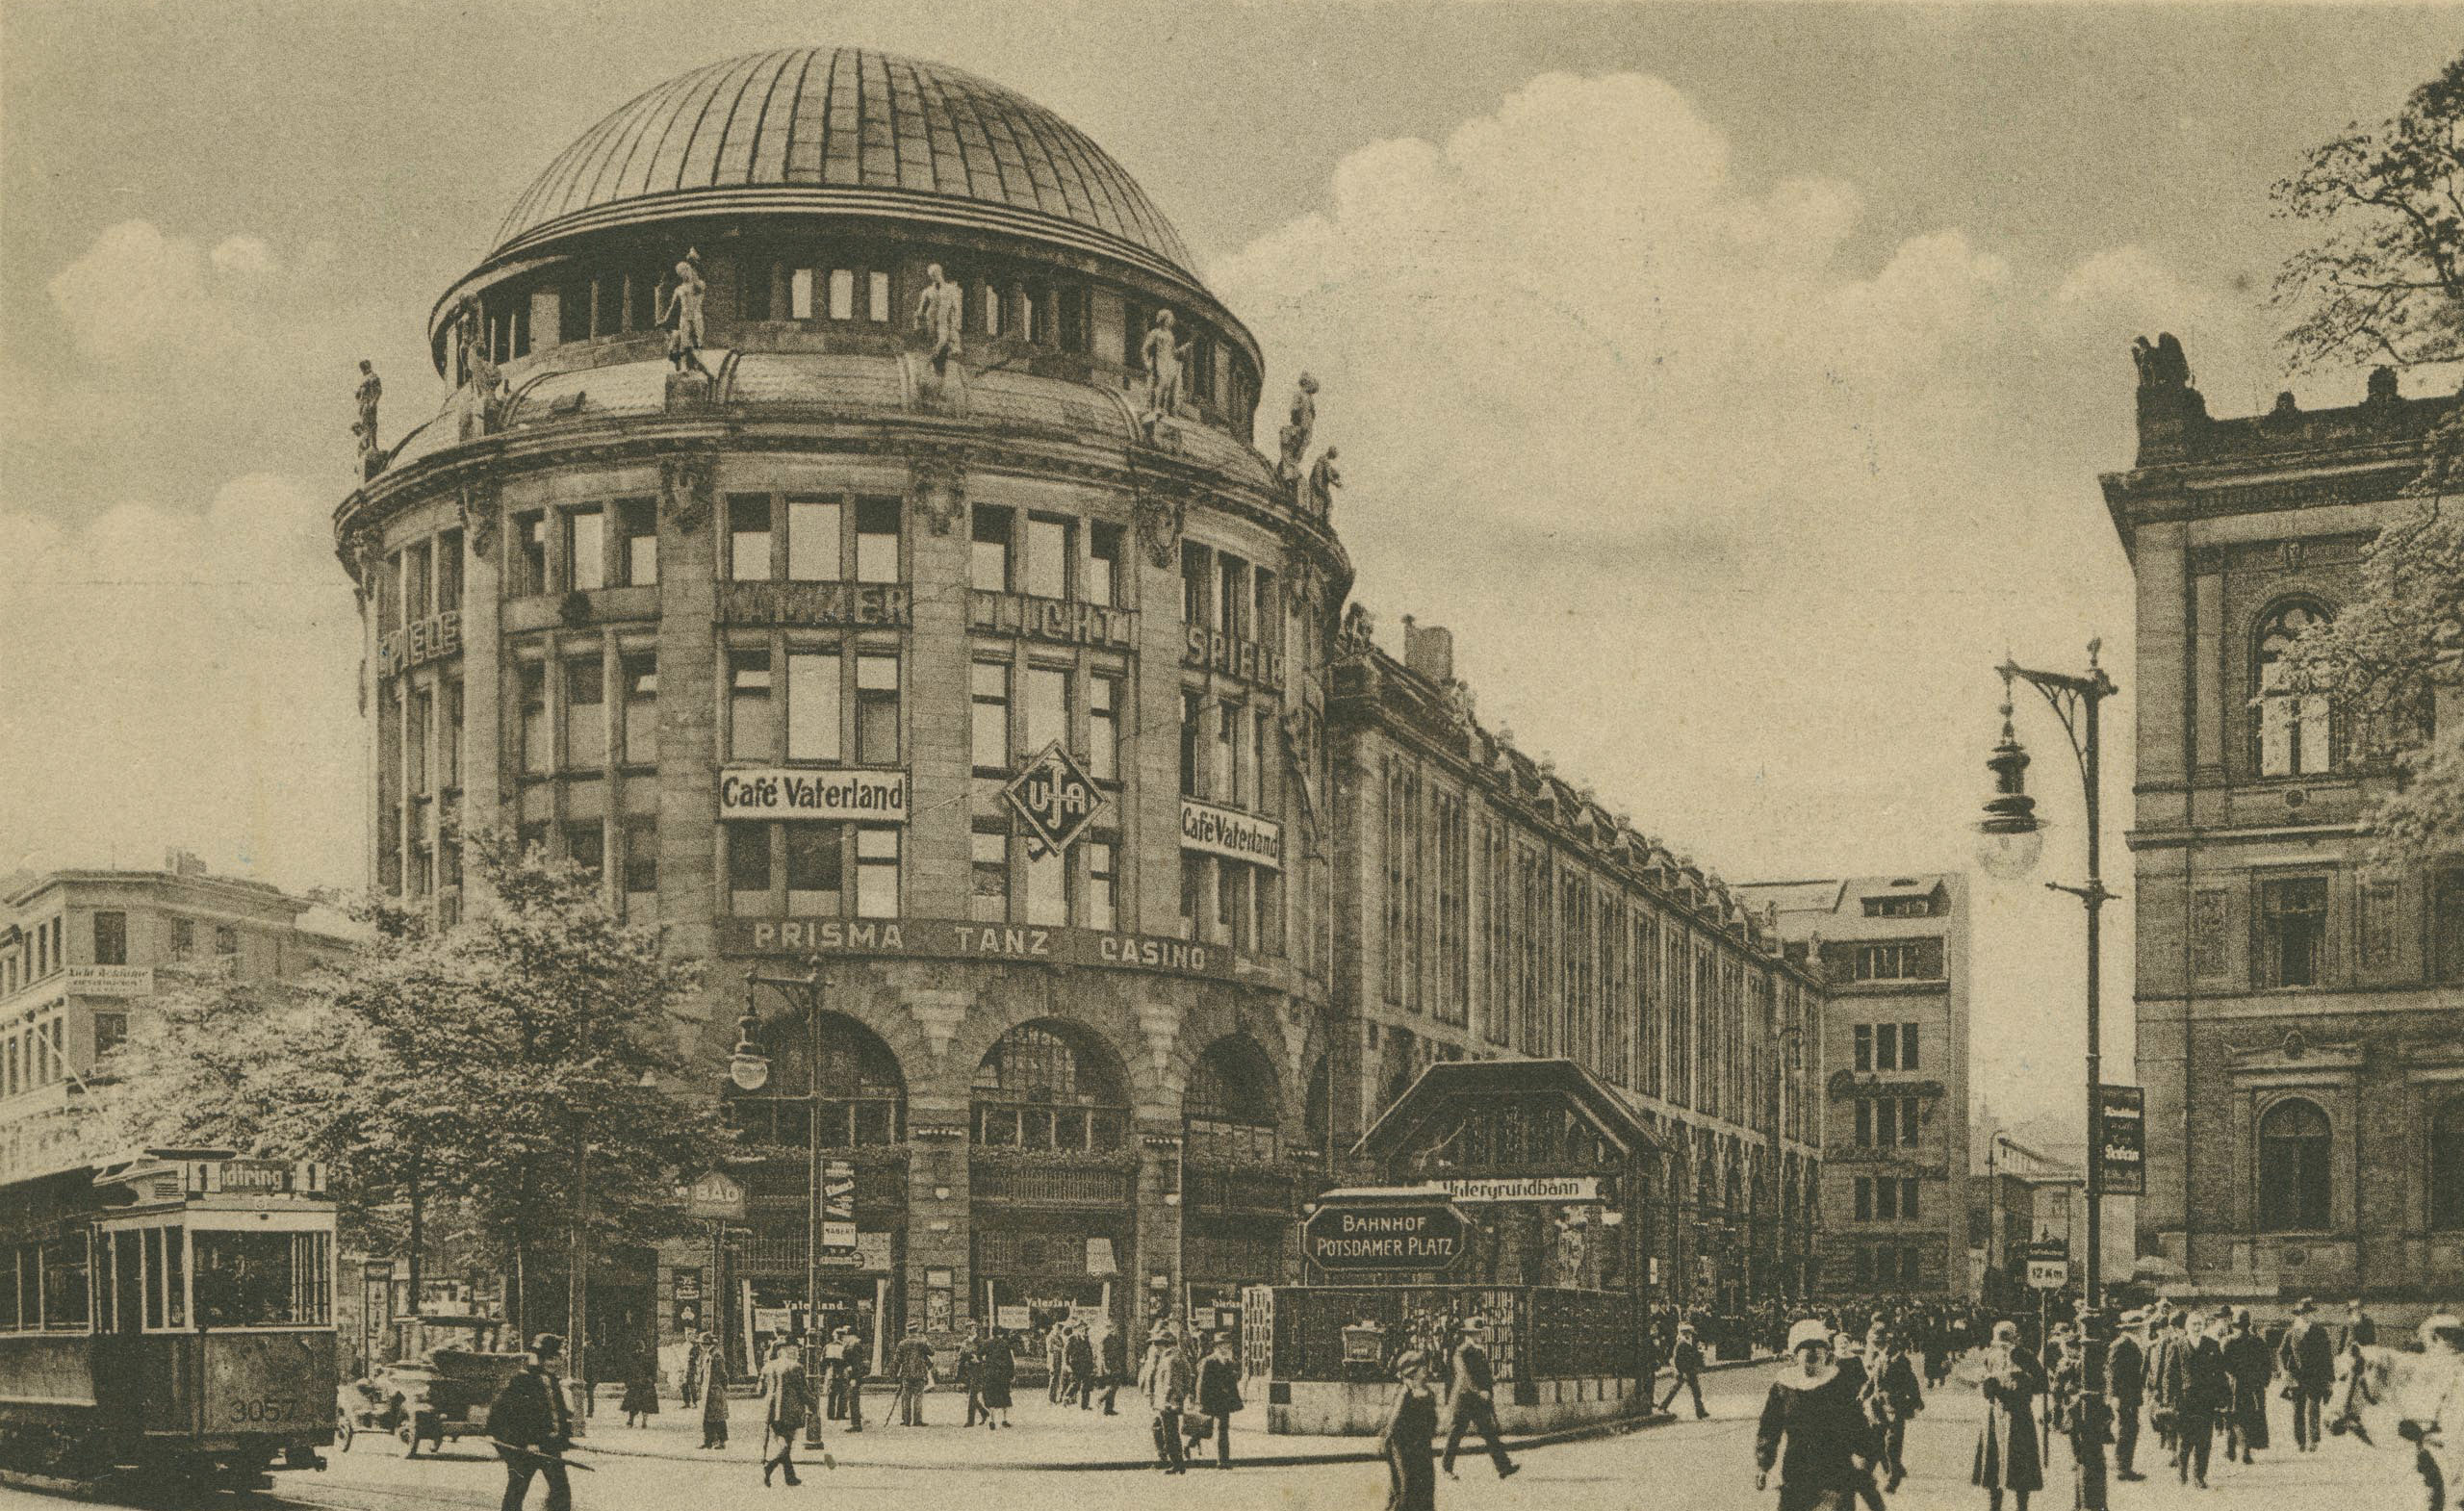 Sepia colored photo: Haus Vaterland with dome